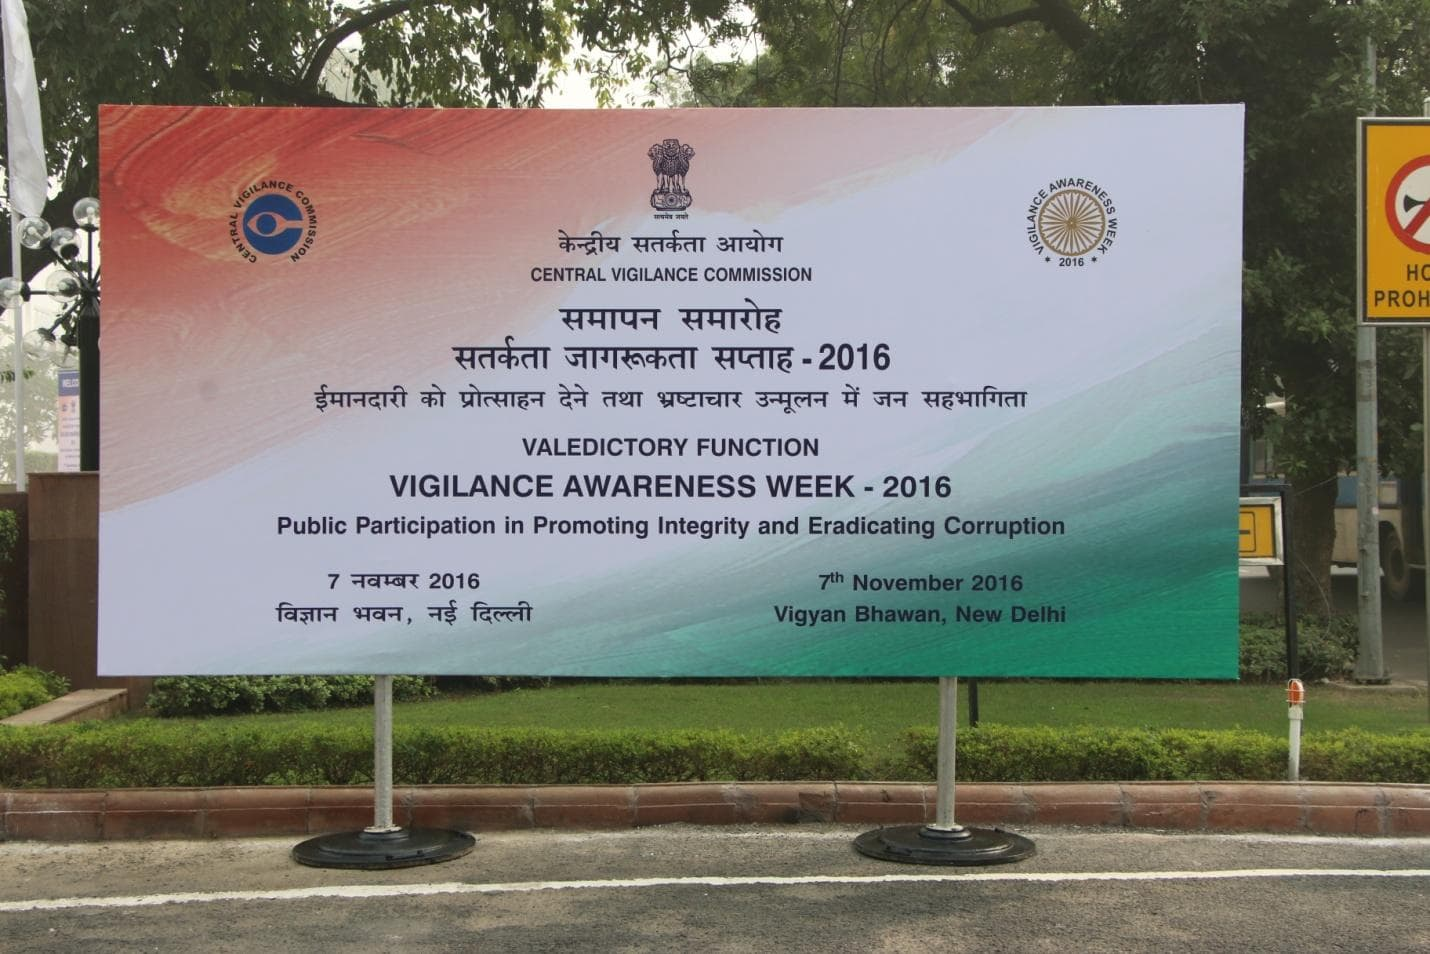 Valedicition Function VIGILANCE AWARENESS WEEK-2016